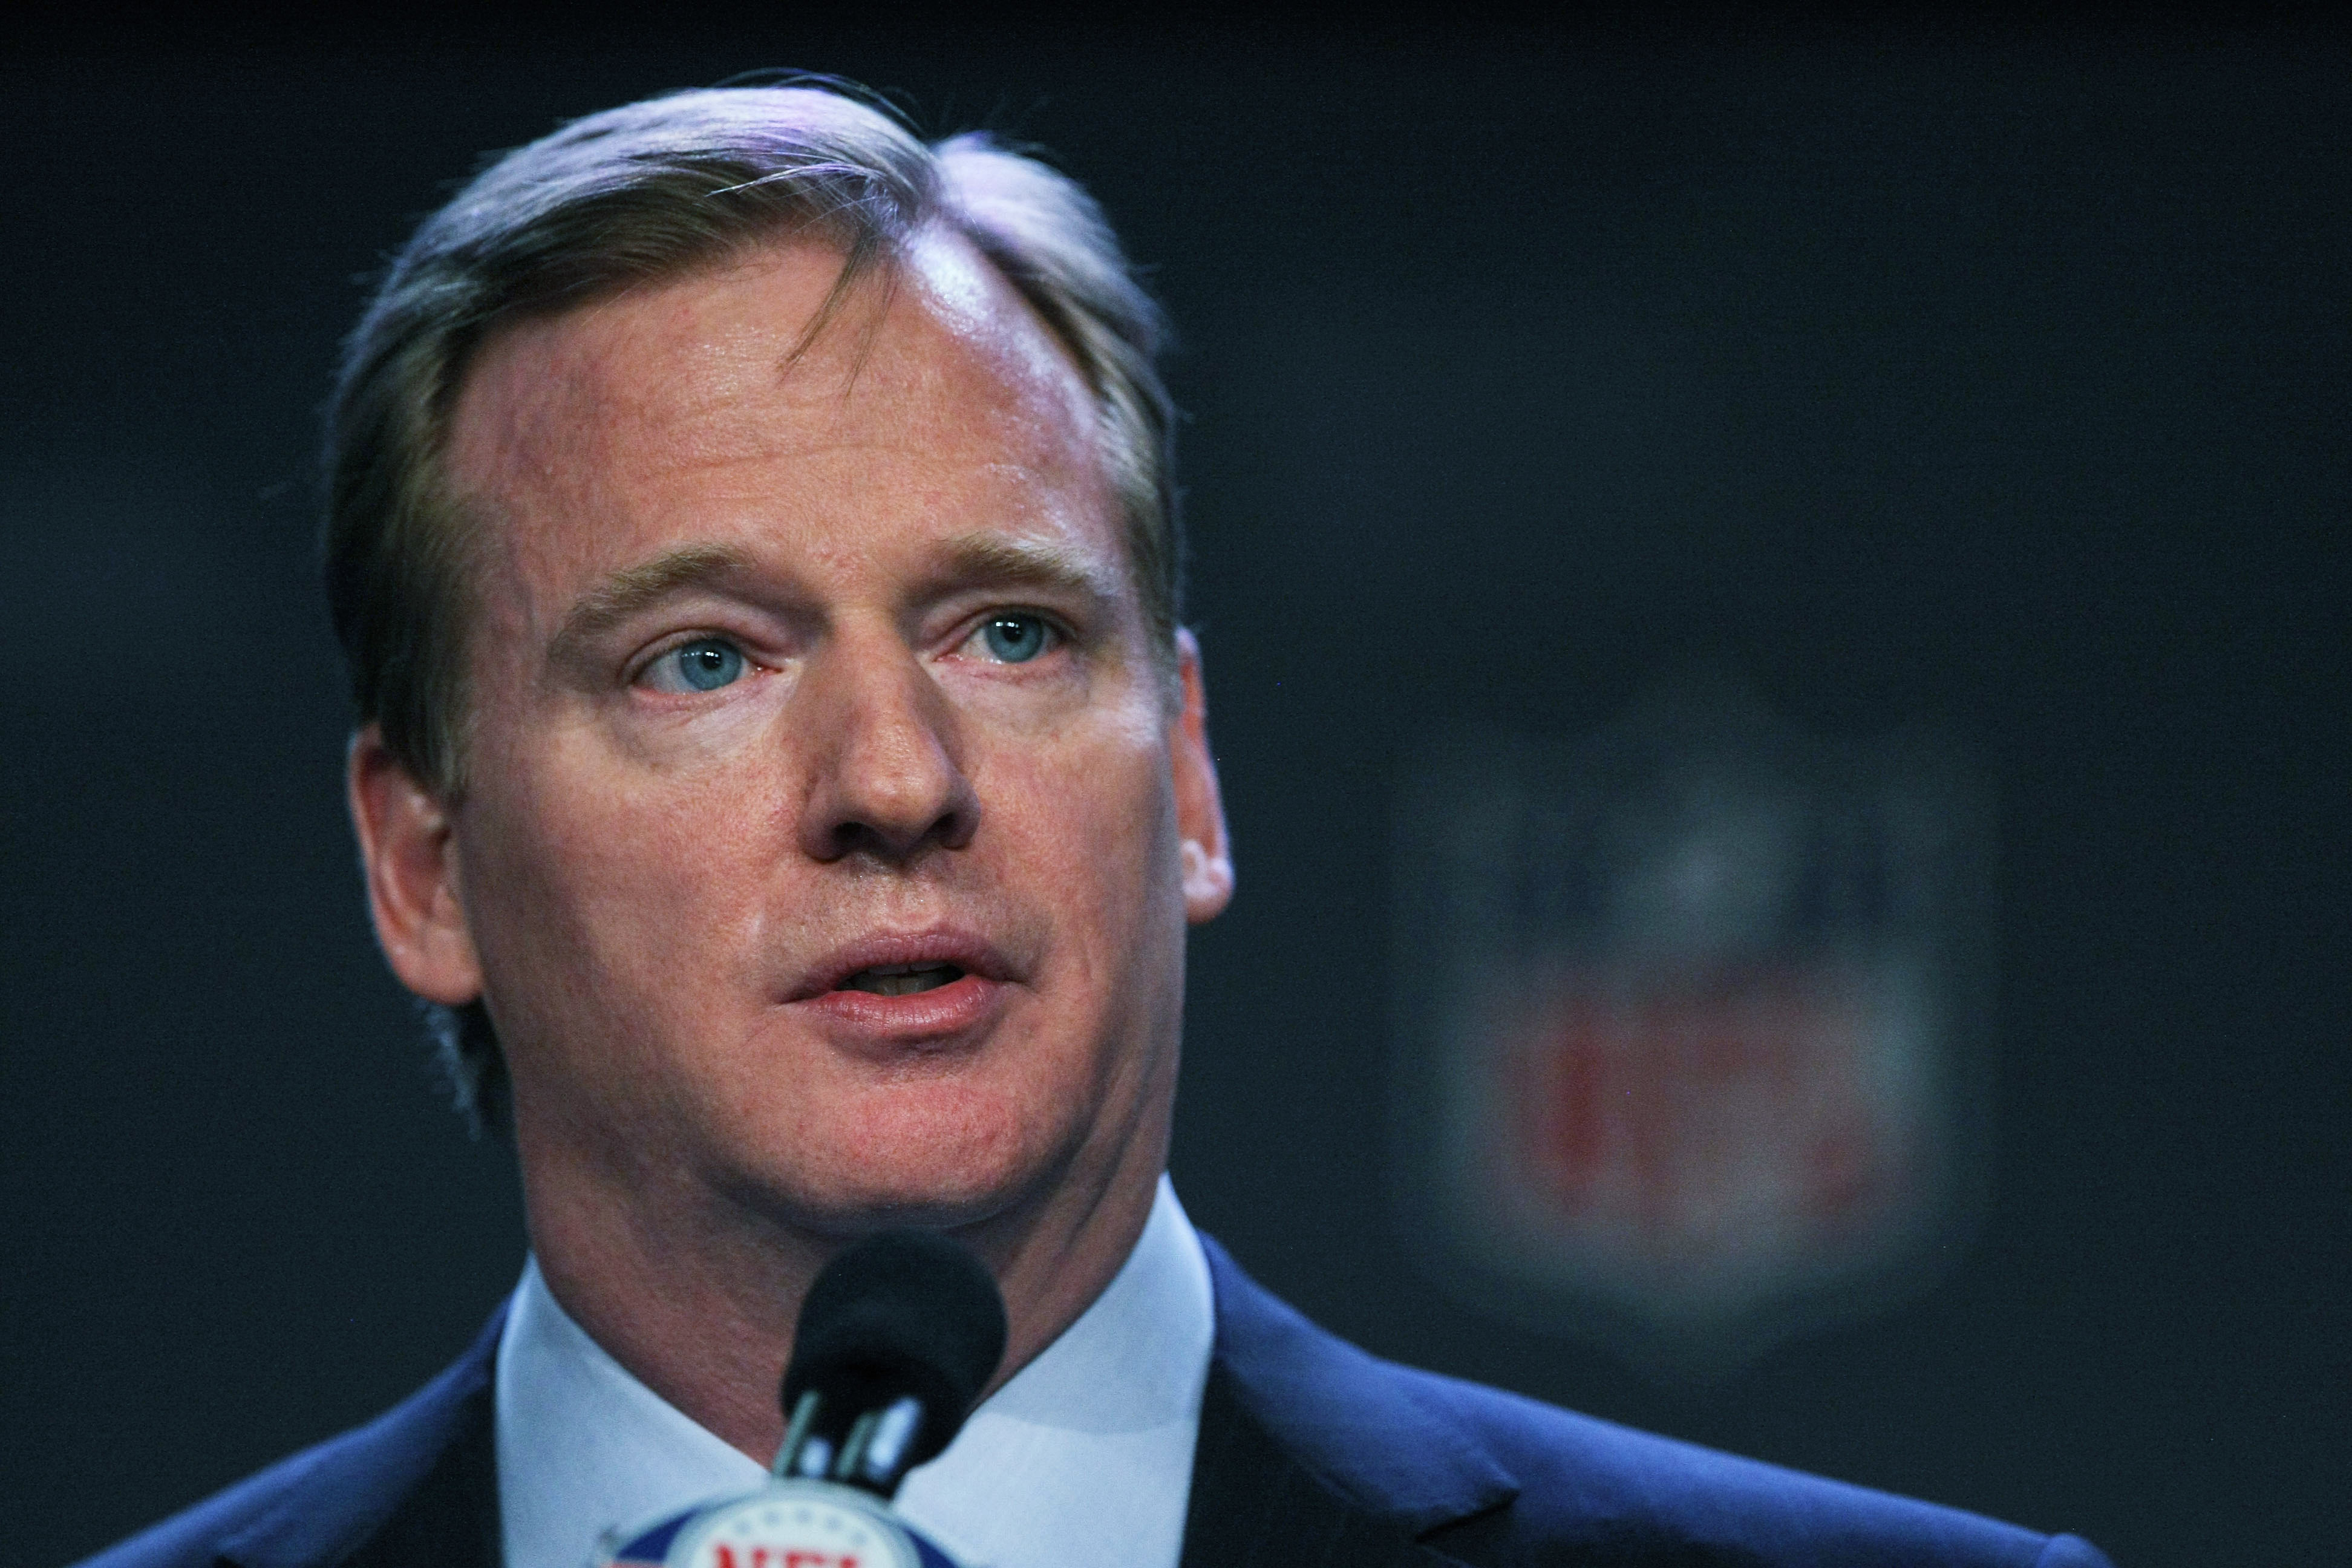 DALLAS, TX - FEBRUARY 04:  NFL commissioner Roger Goodell speaks during a press conference at the Super Bowl XLV media center on February 4, 2011 in Dallas, Texas. The Green Bay Packers will play the Pittsburgh Steelers in Super Bowl XLV on February 6, 20